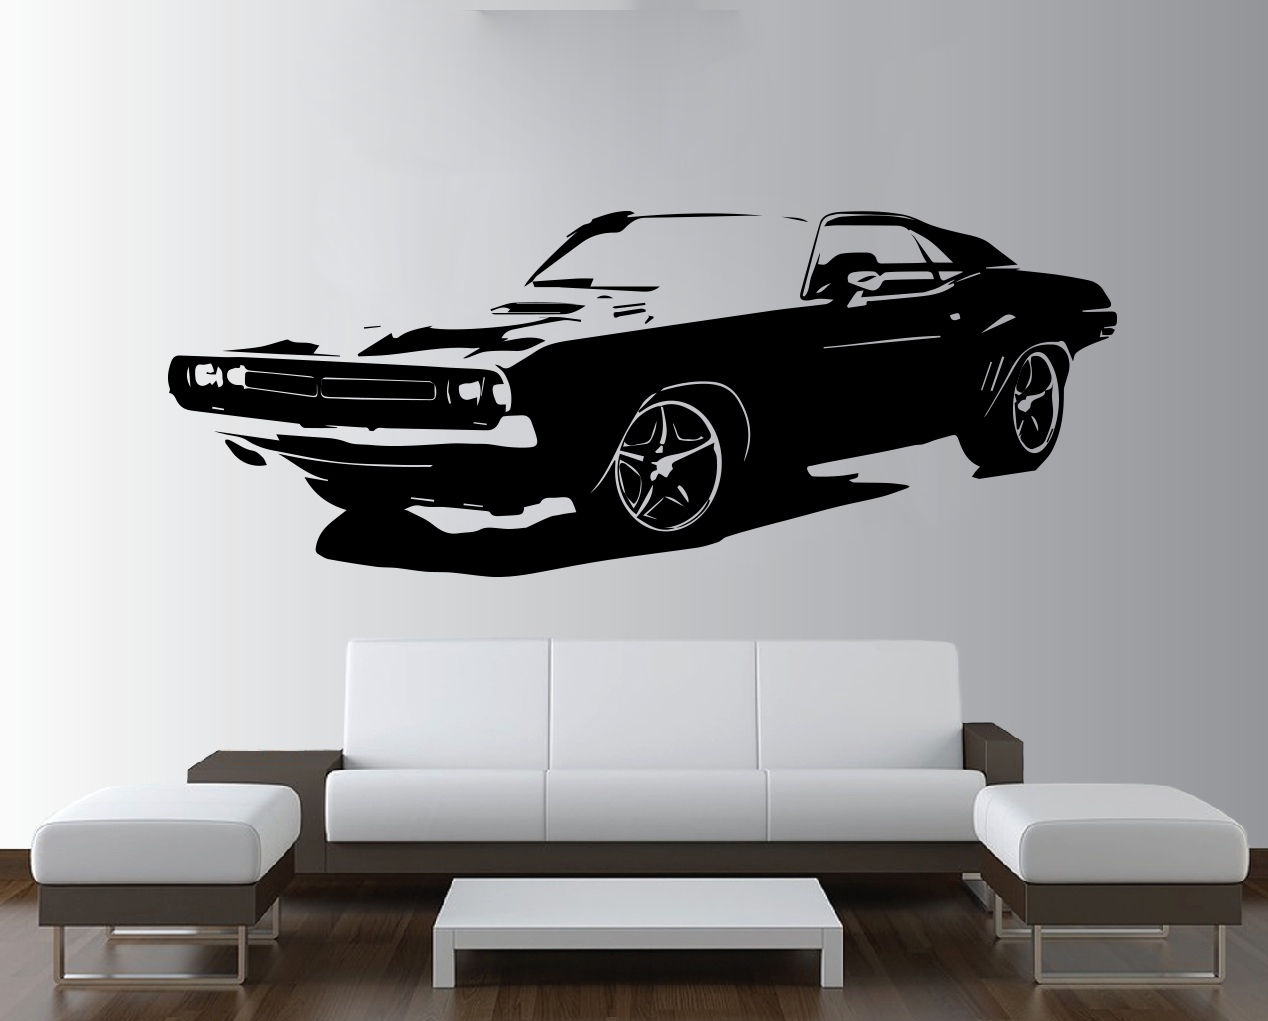 Boultons Graphics Wall Decals Stickers Ebay Home Furniture Diy Wall Stickers Bedroom Sticker Wall Art Large Cars [ 1021 x 1268 Pixel ]